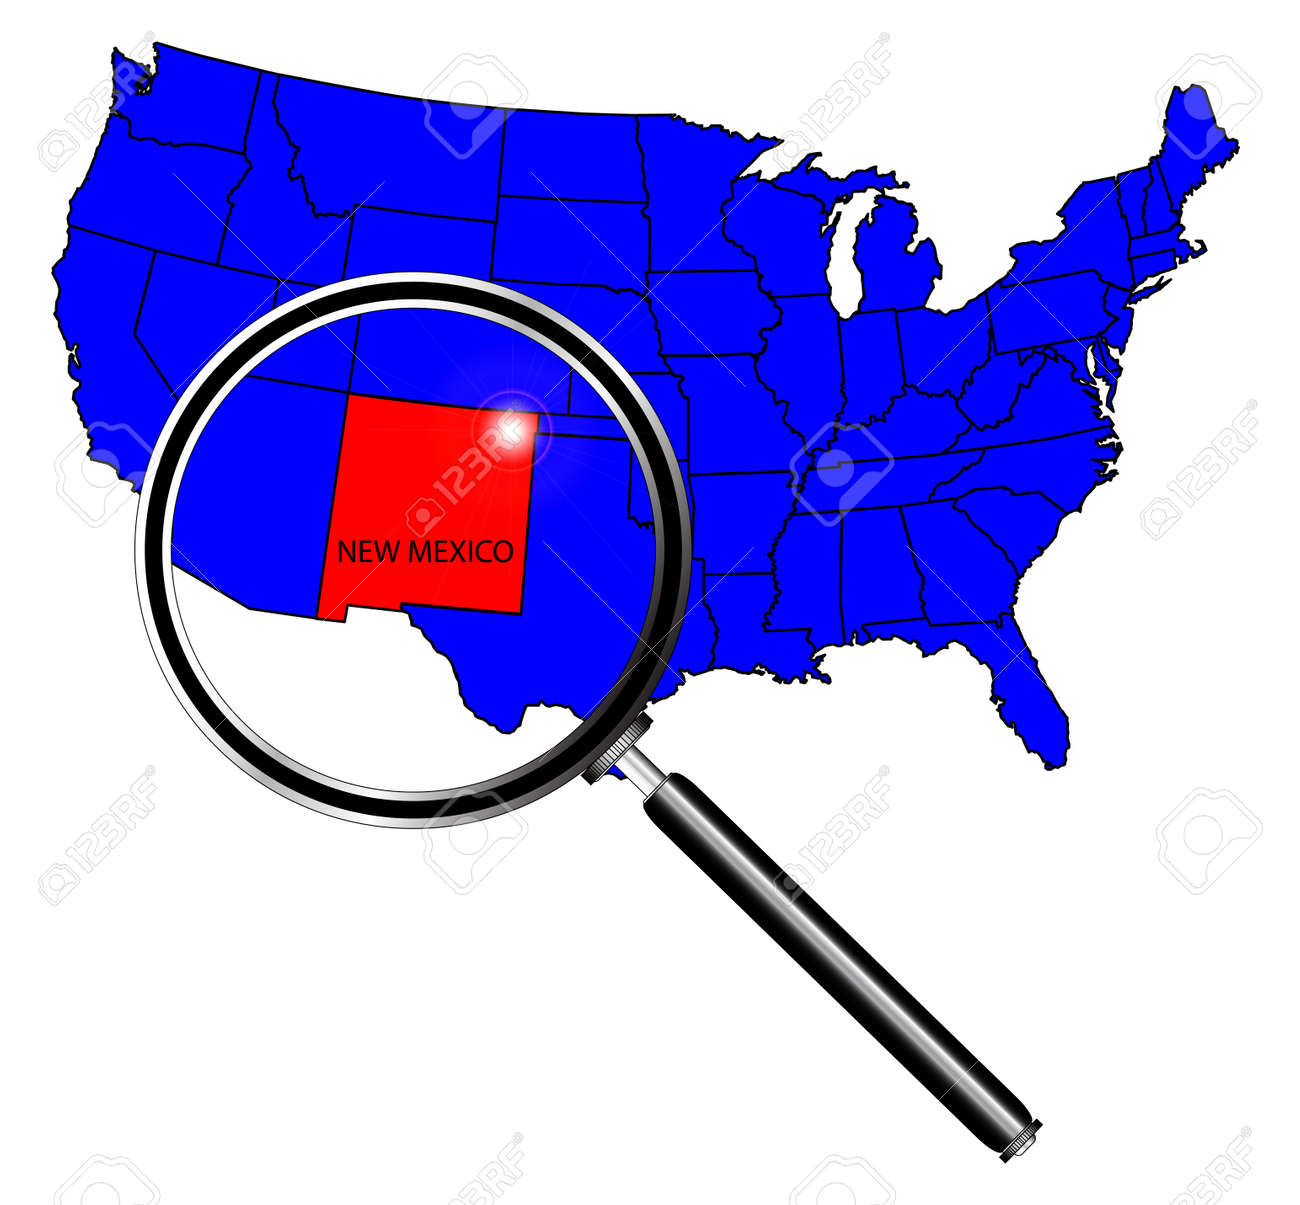 New Mexico State Outline Set Into A Map Of The United States ...